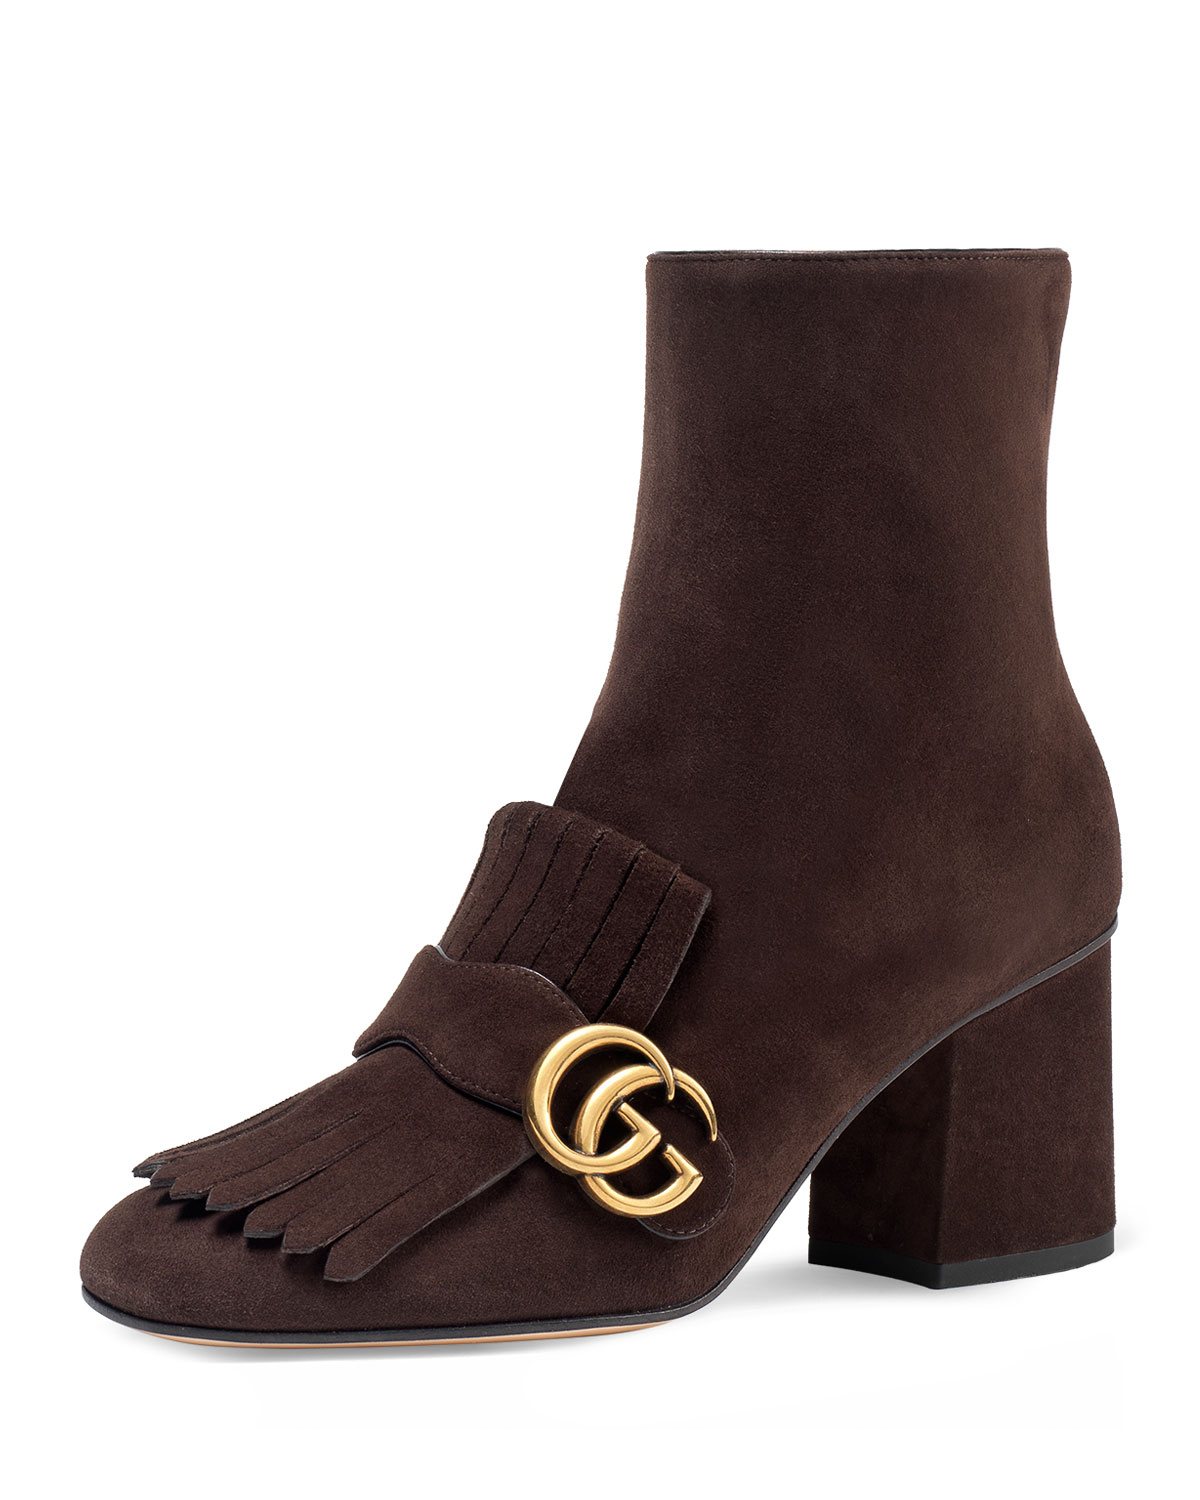 b20f6e50e51 Gucci Marmont Suede 75mm Ankle Boots